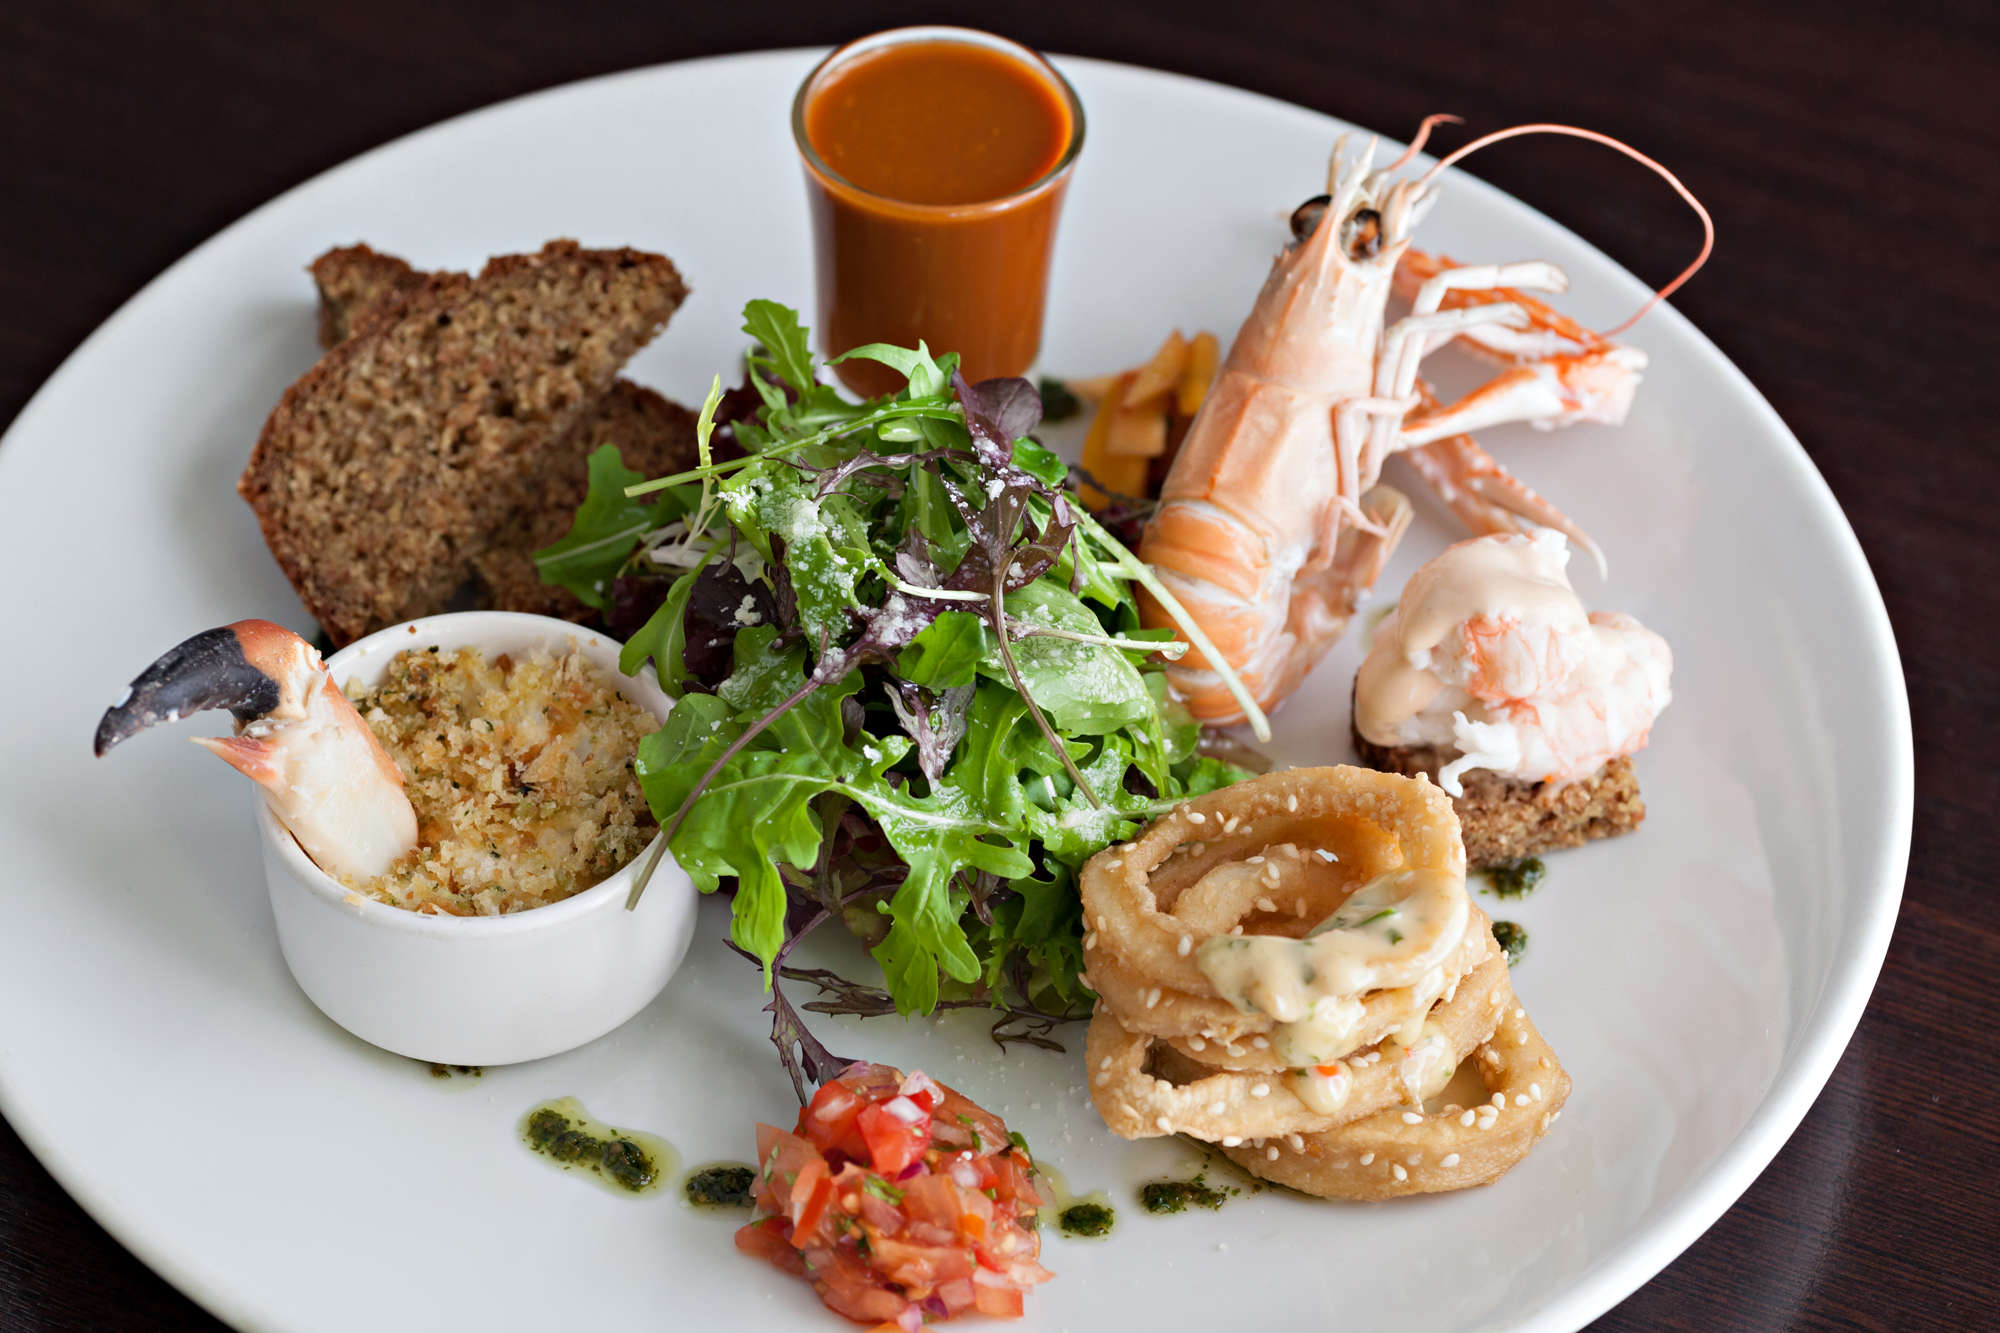 West Cork Seafood Tapas with Crab Crumble, Open Prawn, Calamari with Chilli dressing, Lobster Bisque